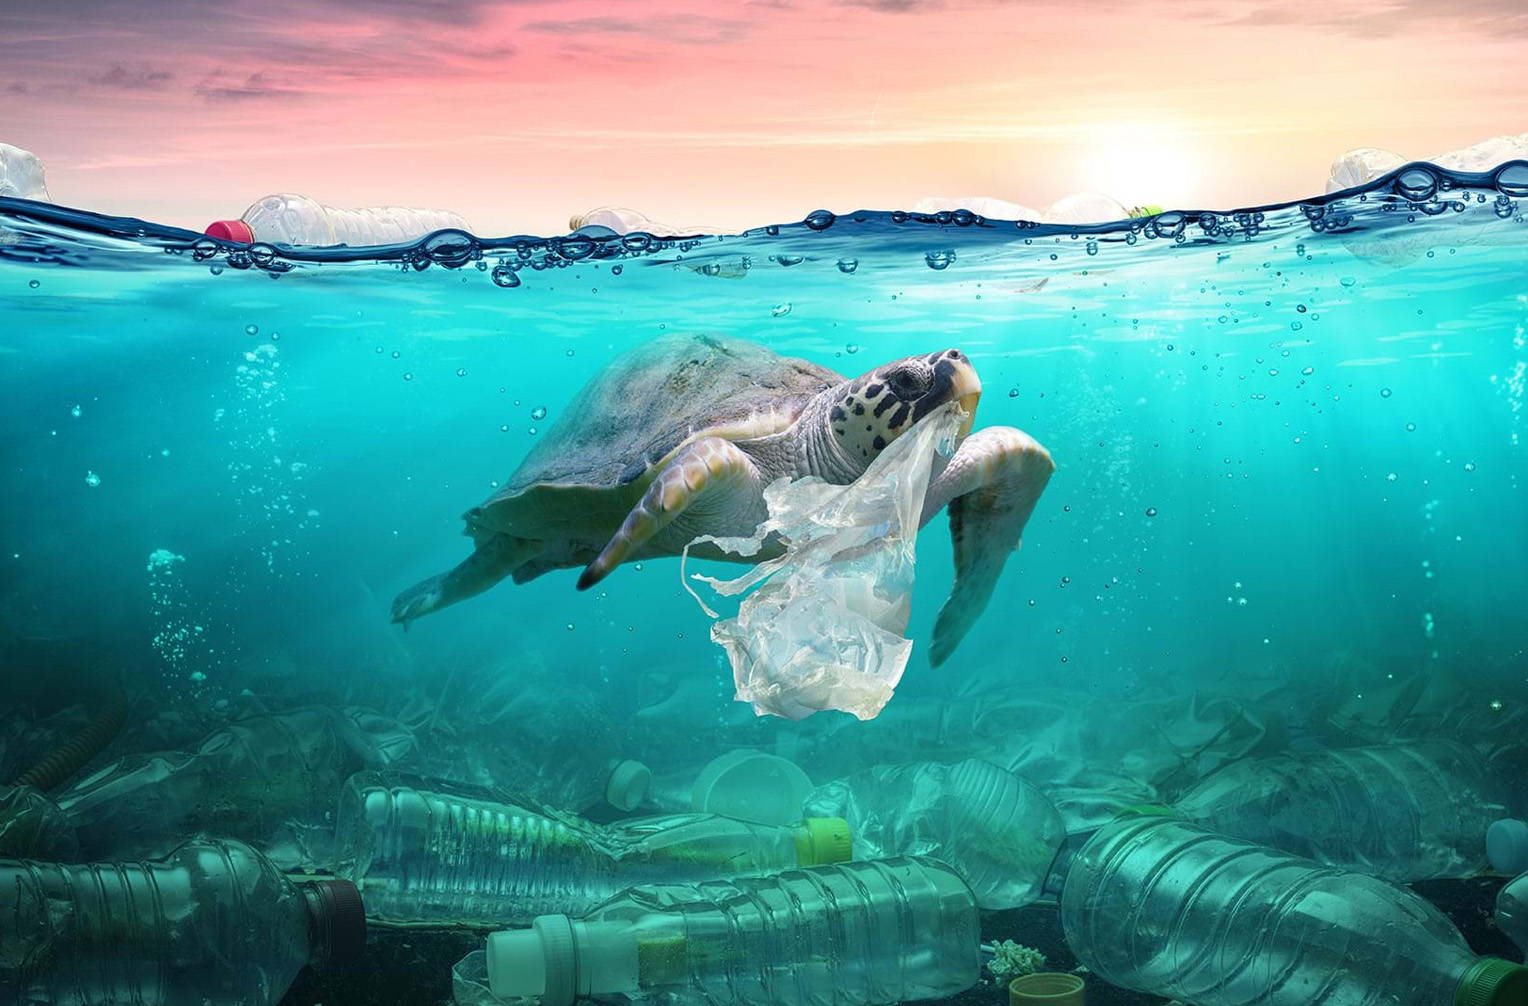 Every sale funds the collection of 12kg of ocean litter